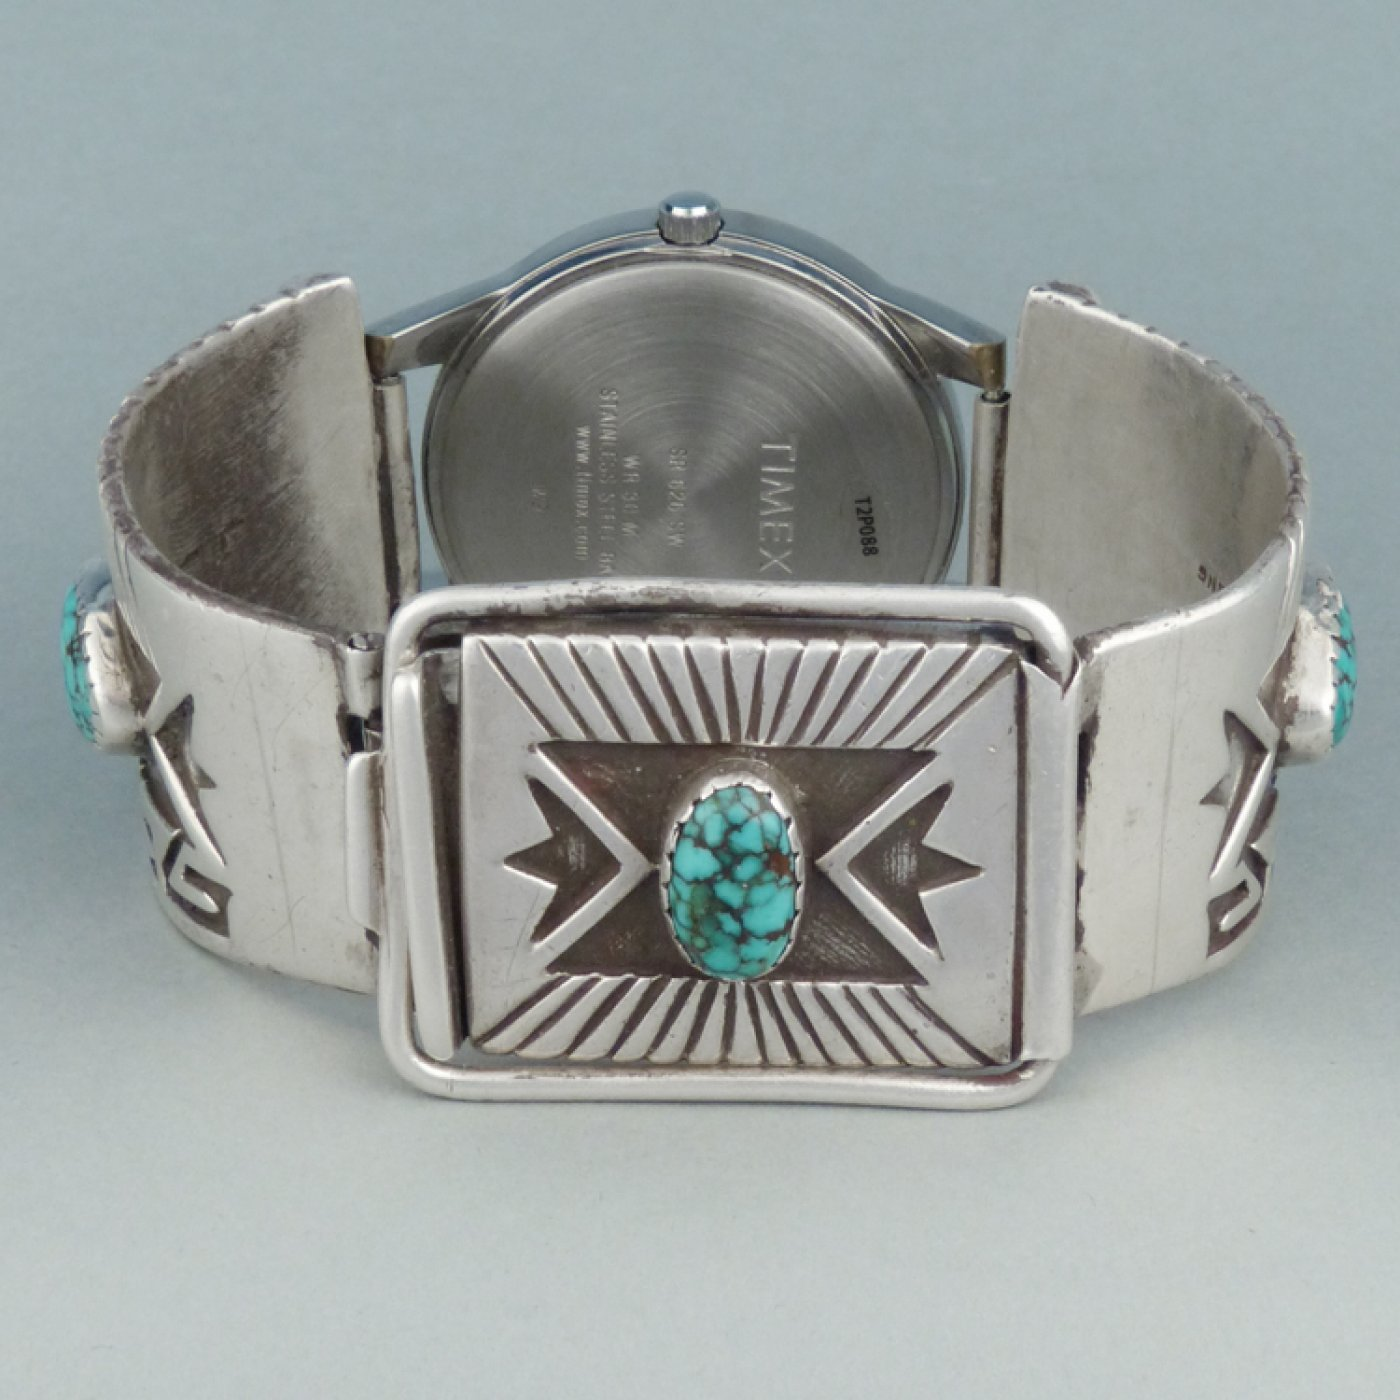 Hopi Stamped Silver And Turquoise Watch Band By Lewis